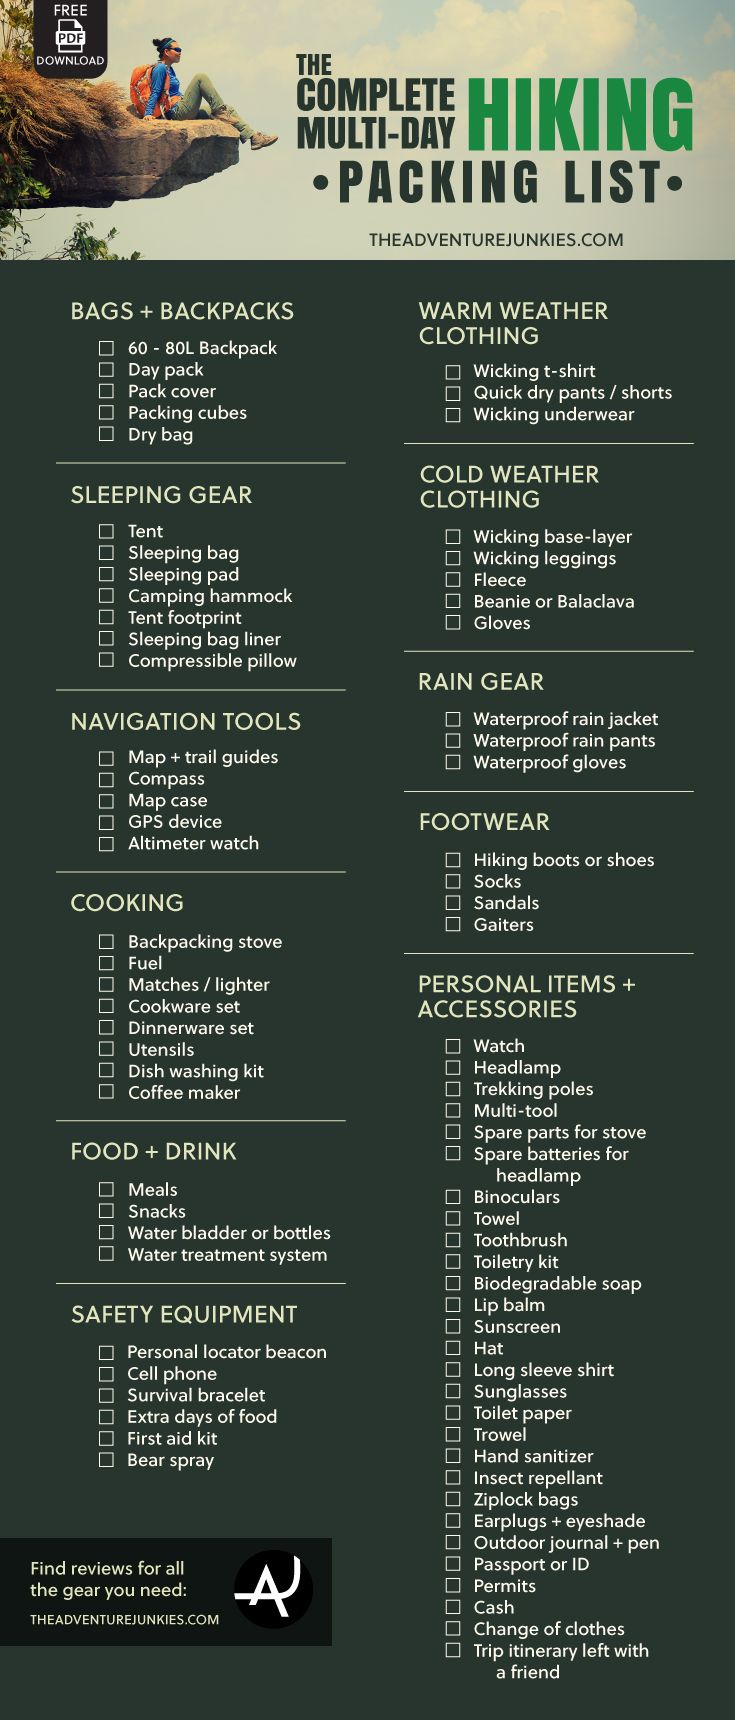 The ultimate multiday hiking packing list pack list hiking gear